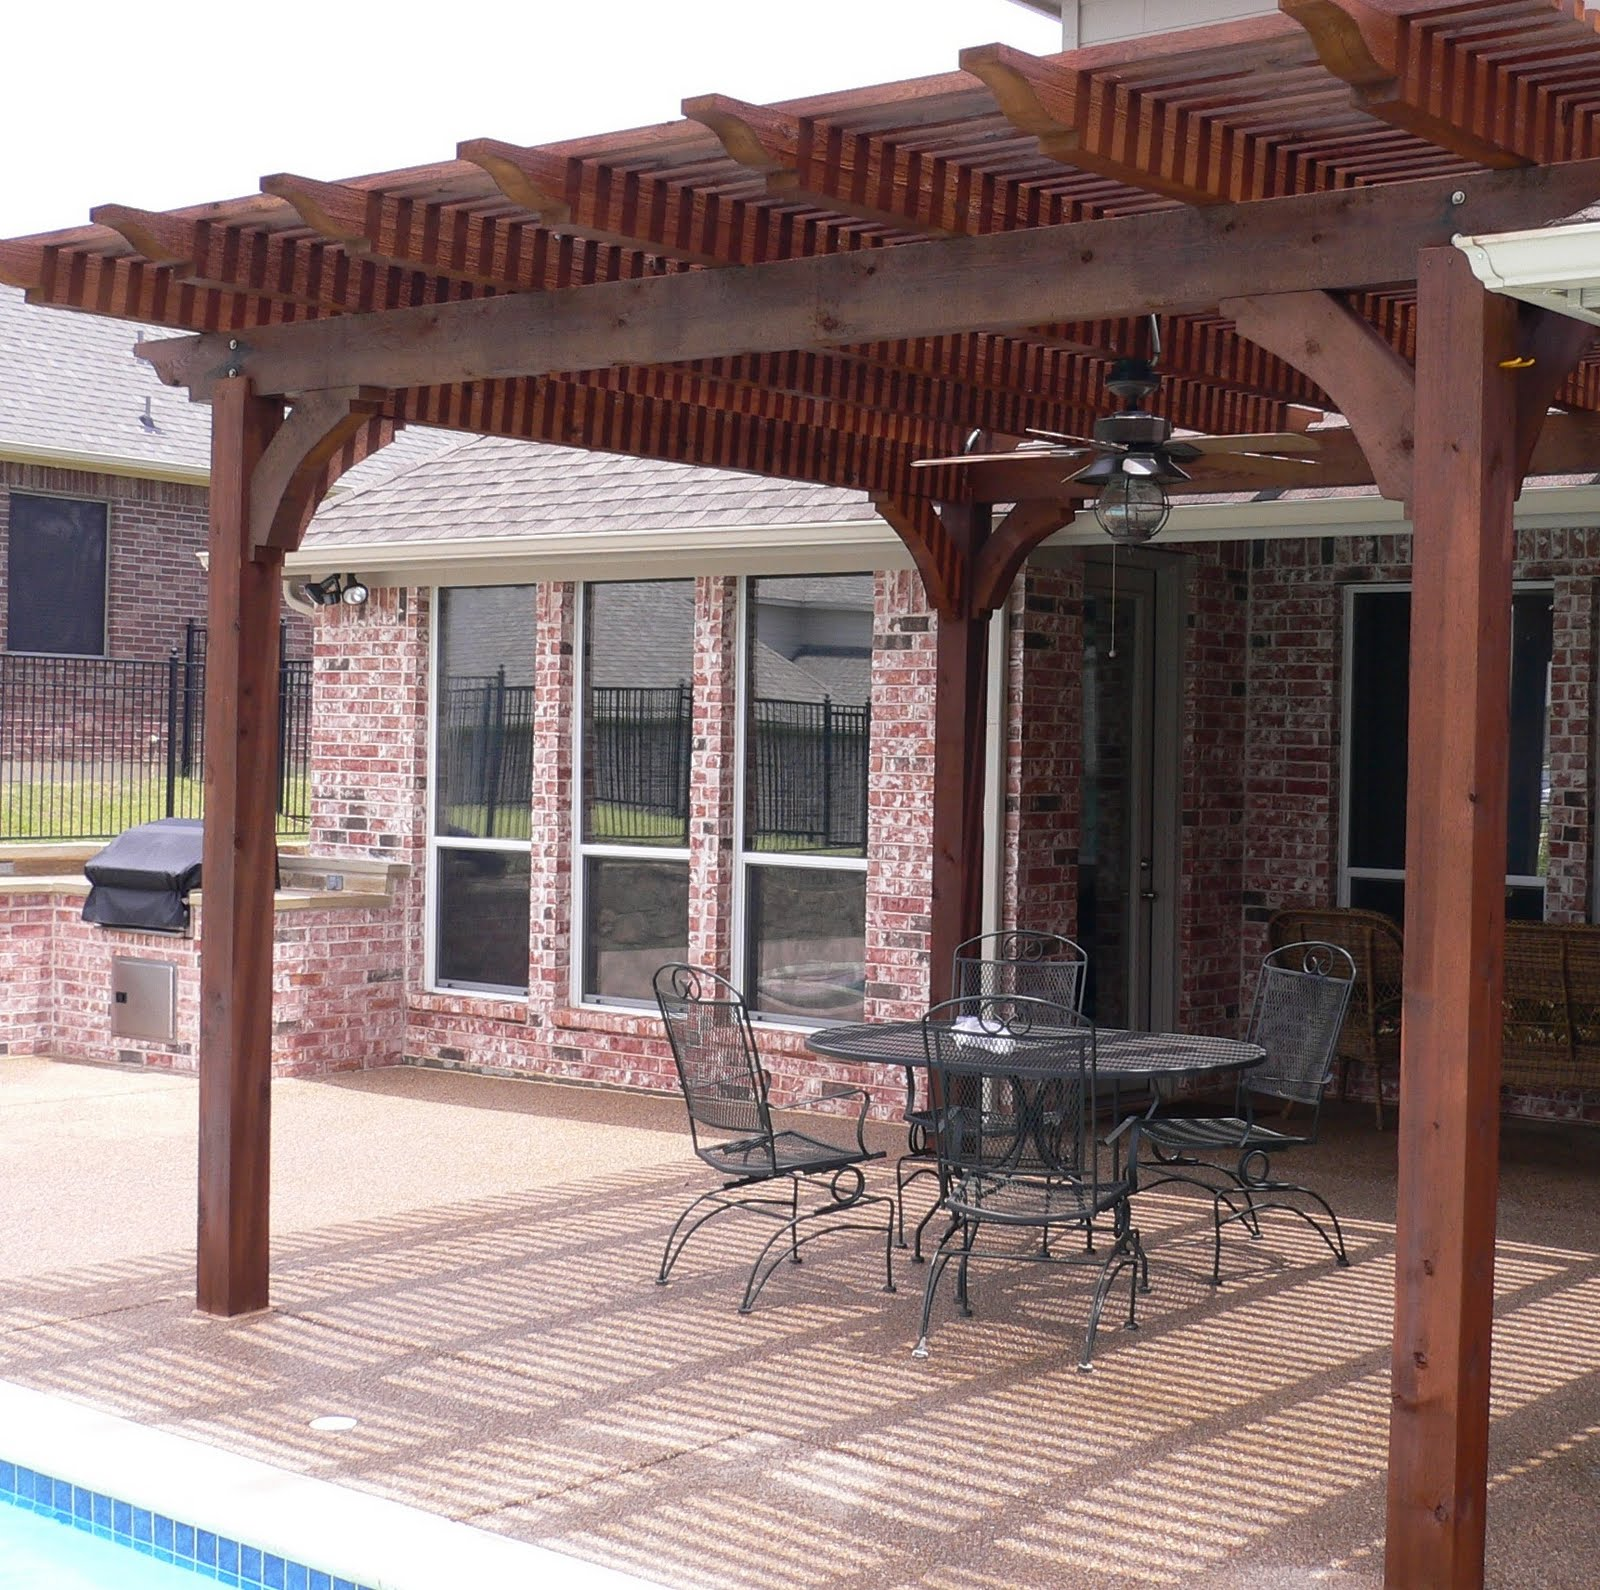 Wooden Patio Covers Design - HomesFeed on Roof For Patio Ideas id=80794